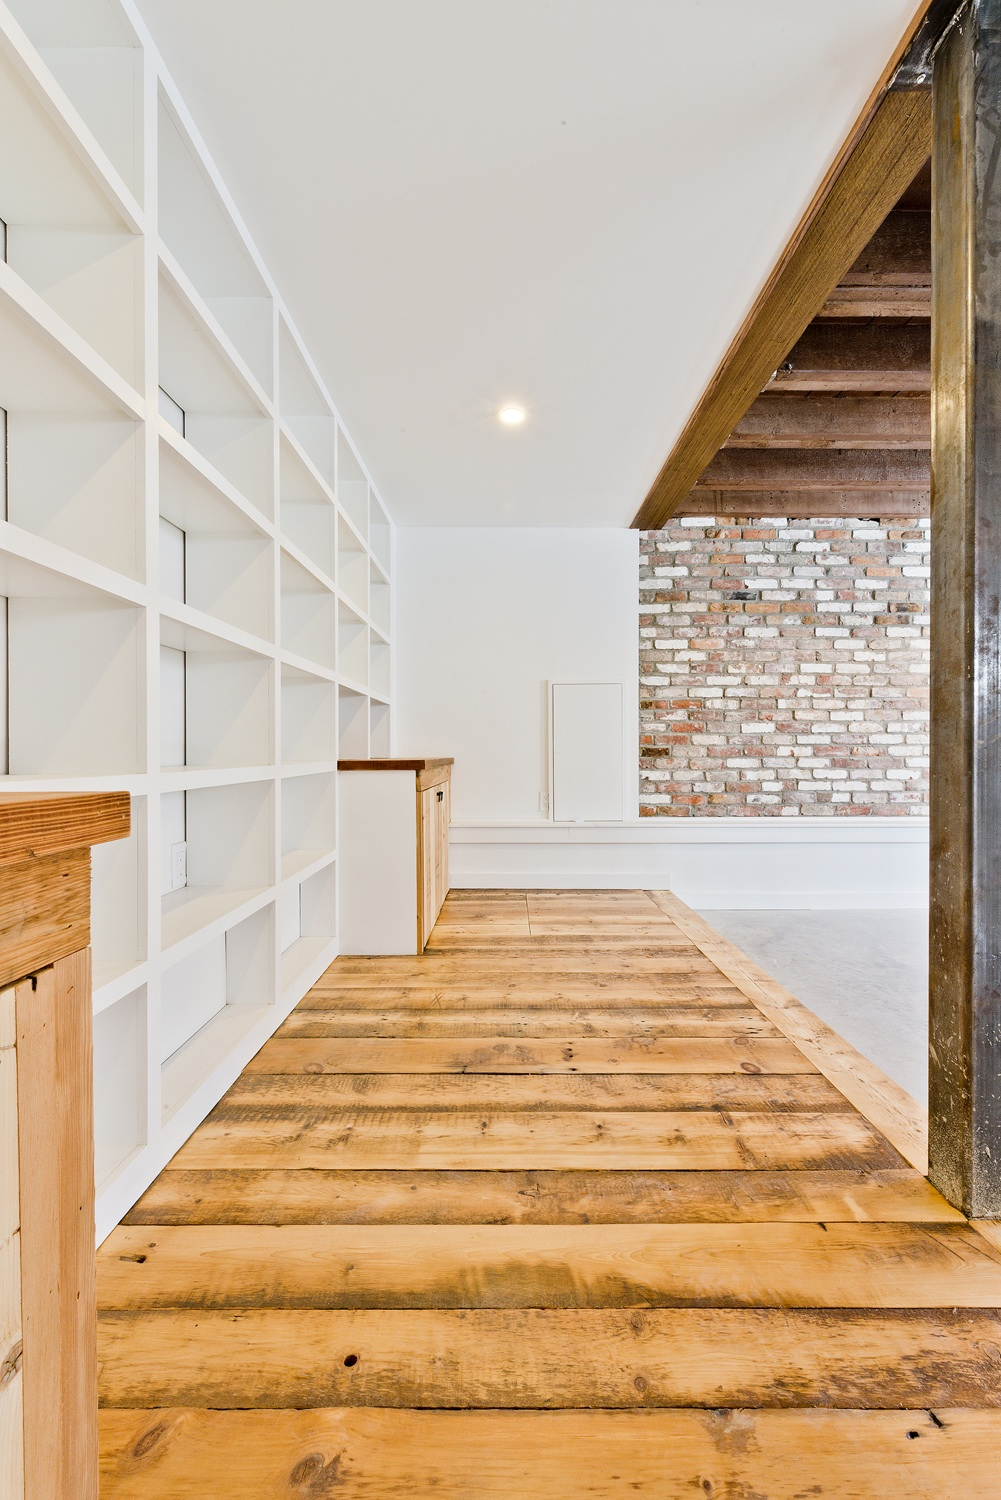 Use existing brick and pine